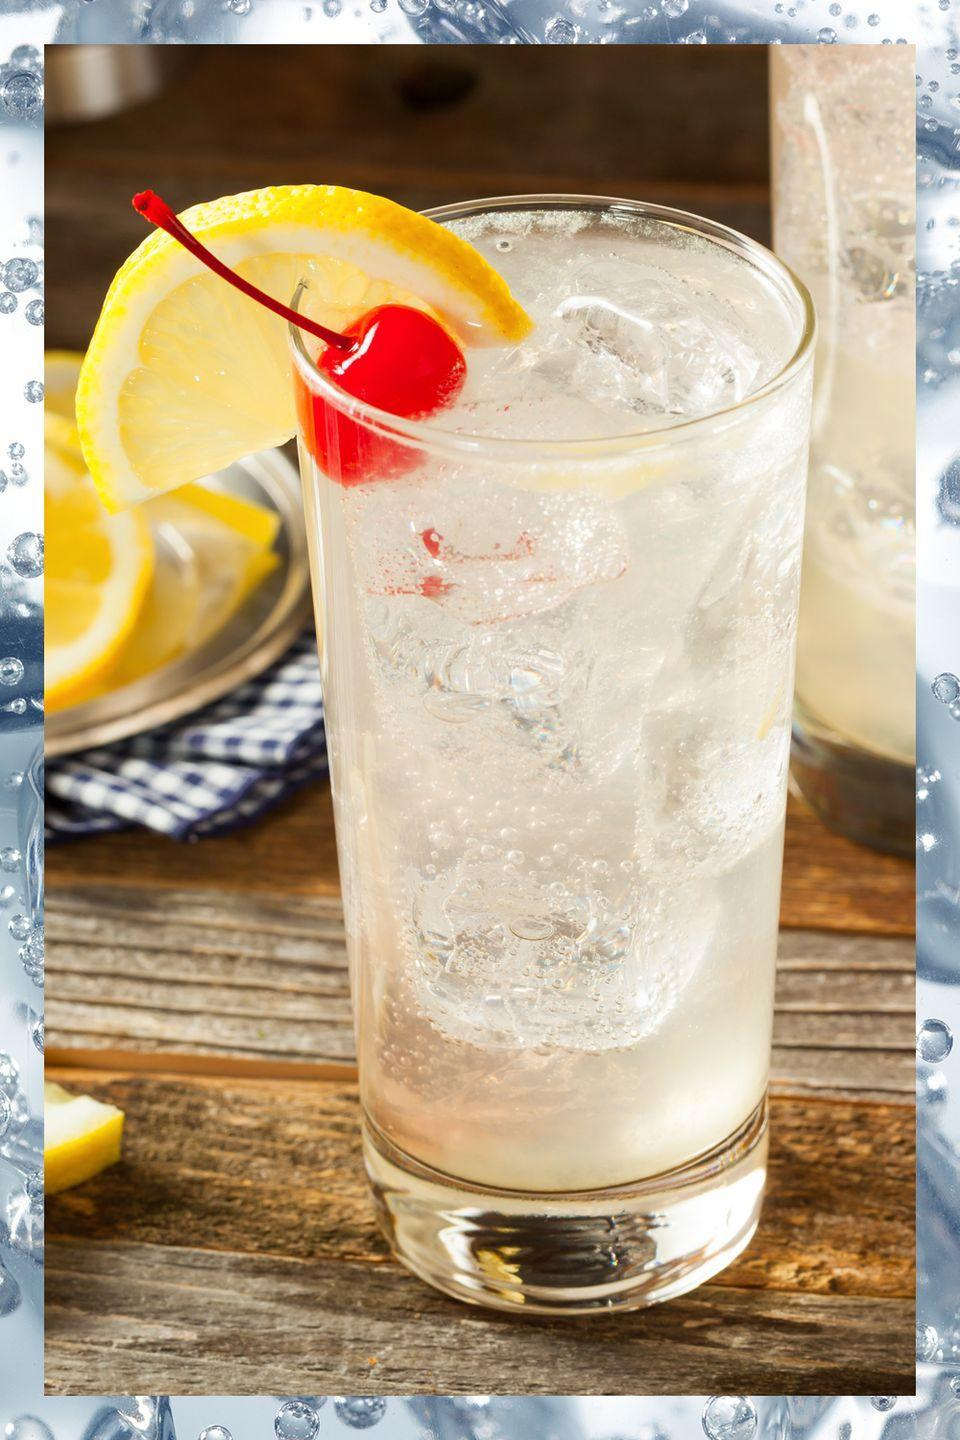 <p>Essentially a sour topped with club soda, the Tom Collins is a classic cocktail that's as easy and delicious to whip up at home as it is at your favorite bar. For a truly traditional version, opt for an Old Tom style gin. </p><p>- 2 oz Old Tom gin<br>- 1 oz lemon juice<br>- .5 oz simple syrup<br>- Club soda to top</p><p><em>Build all ingredients in a glass with ice and stir gently to combine. Garnish with a lemon slice and a cherry. </em></p>